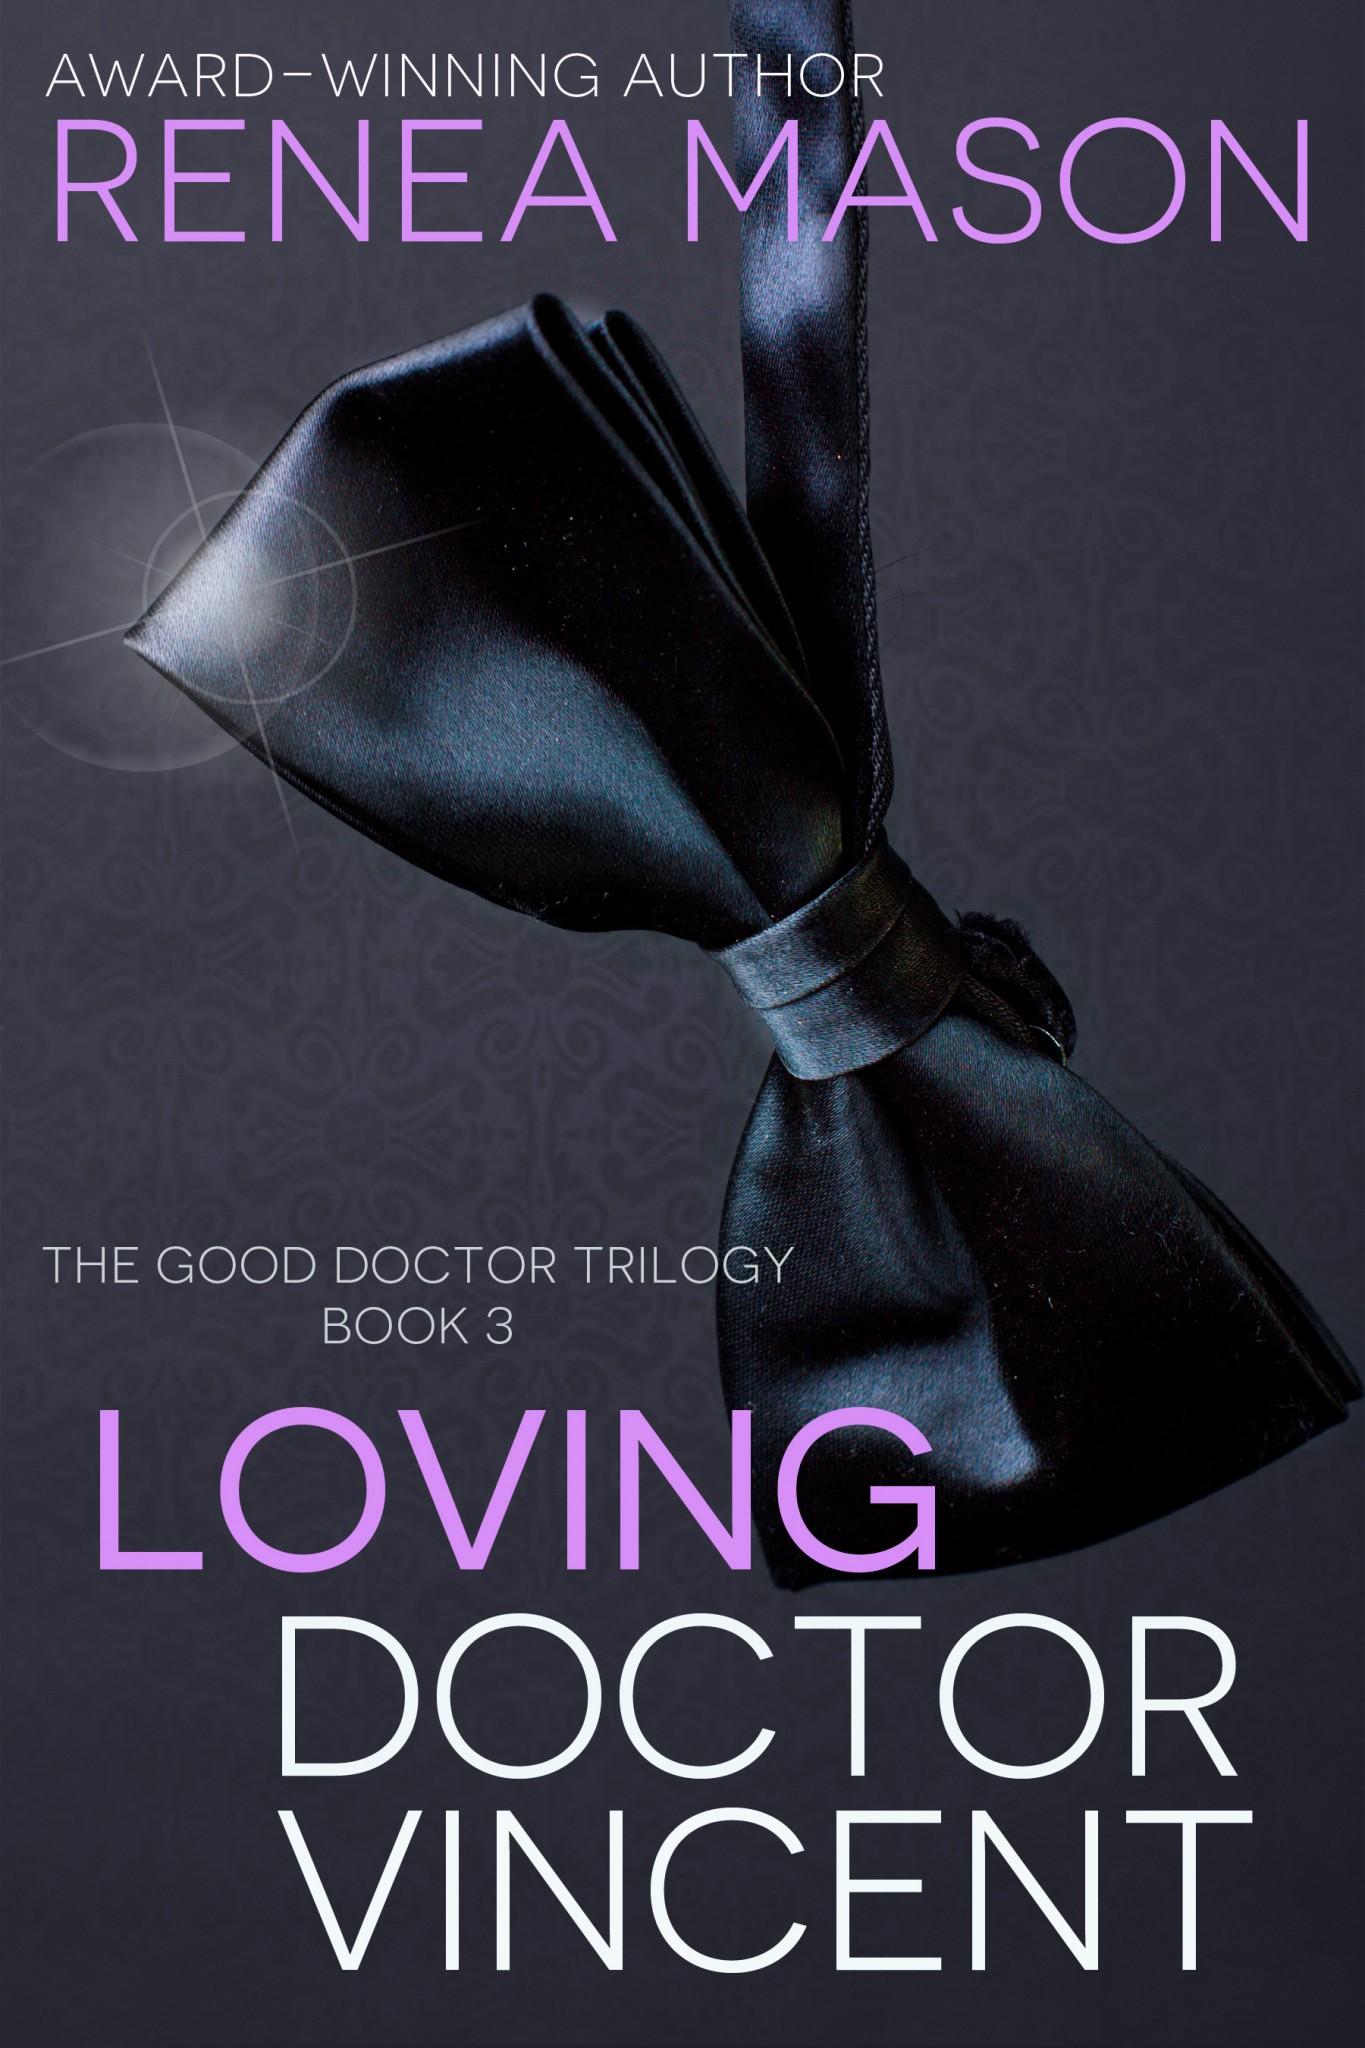 Loving Doctor Vincent by Renea Mason